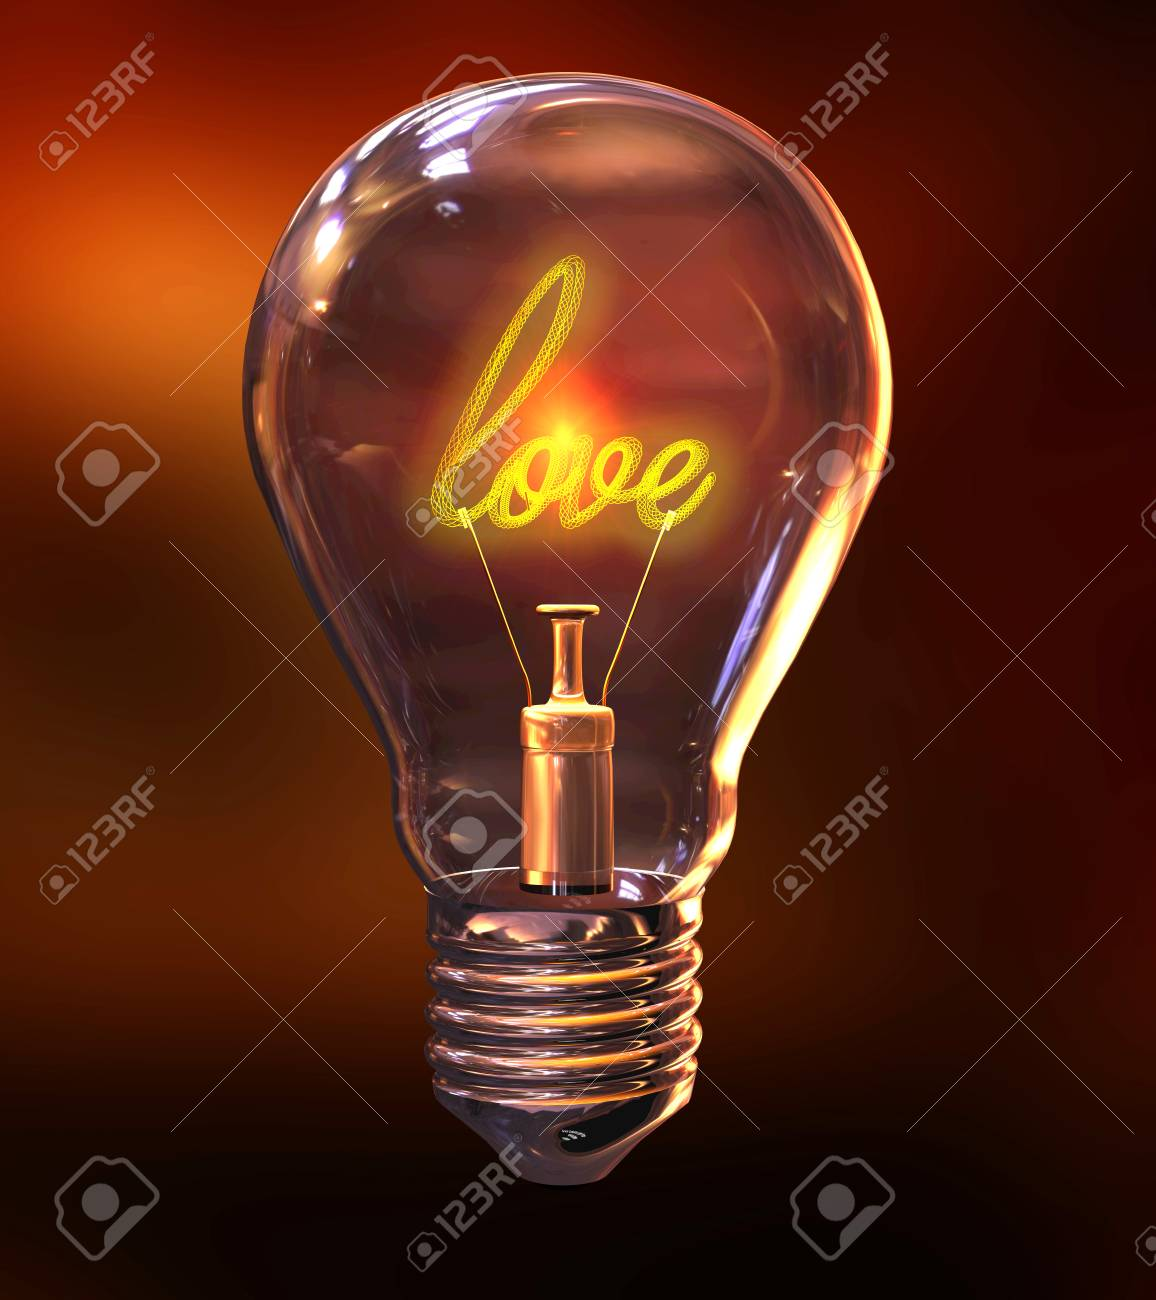 3d Illustration Of A Light Bulb With The Word Love As Filament